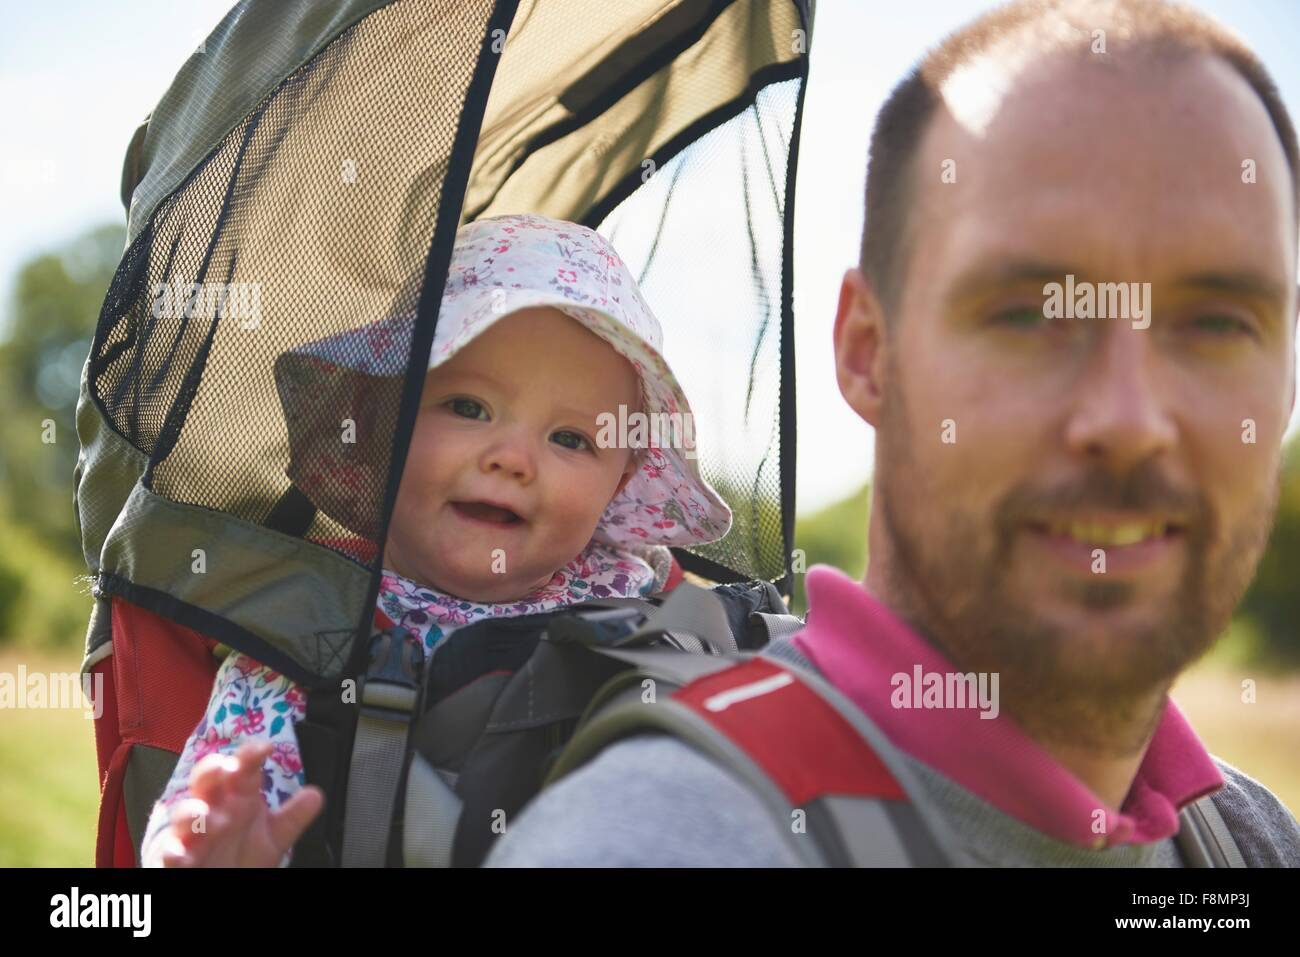 Father carrying baby daughter on back - Stock Image